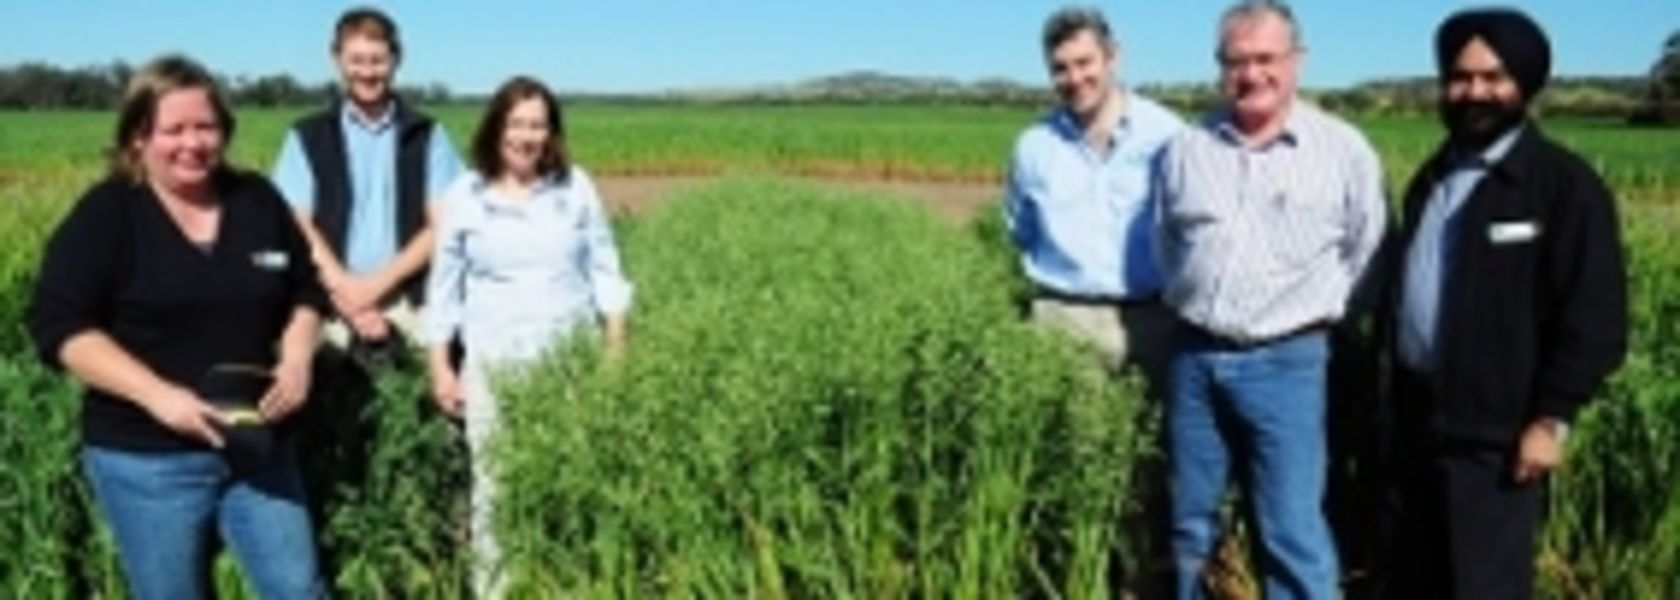 Durack oats a potential game-changer